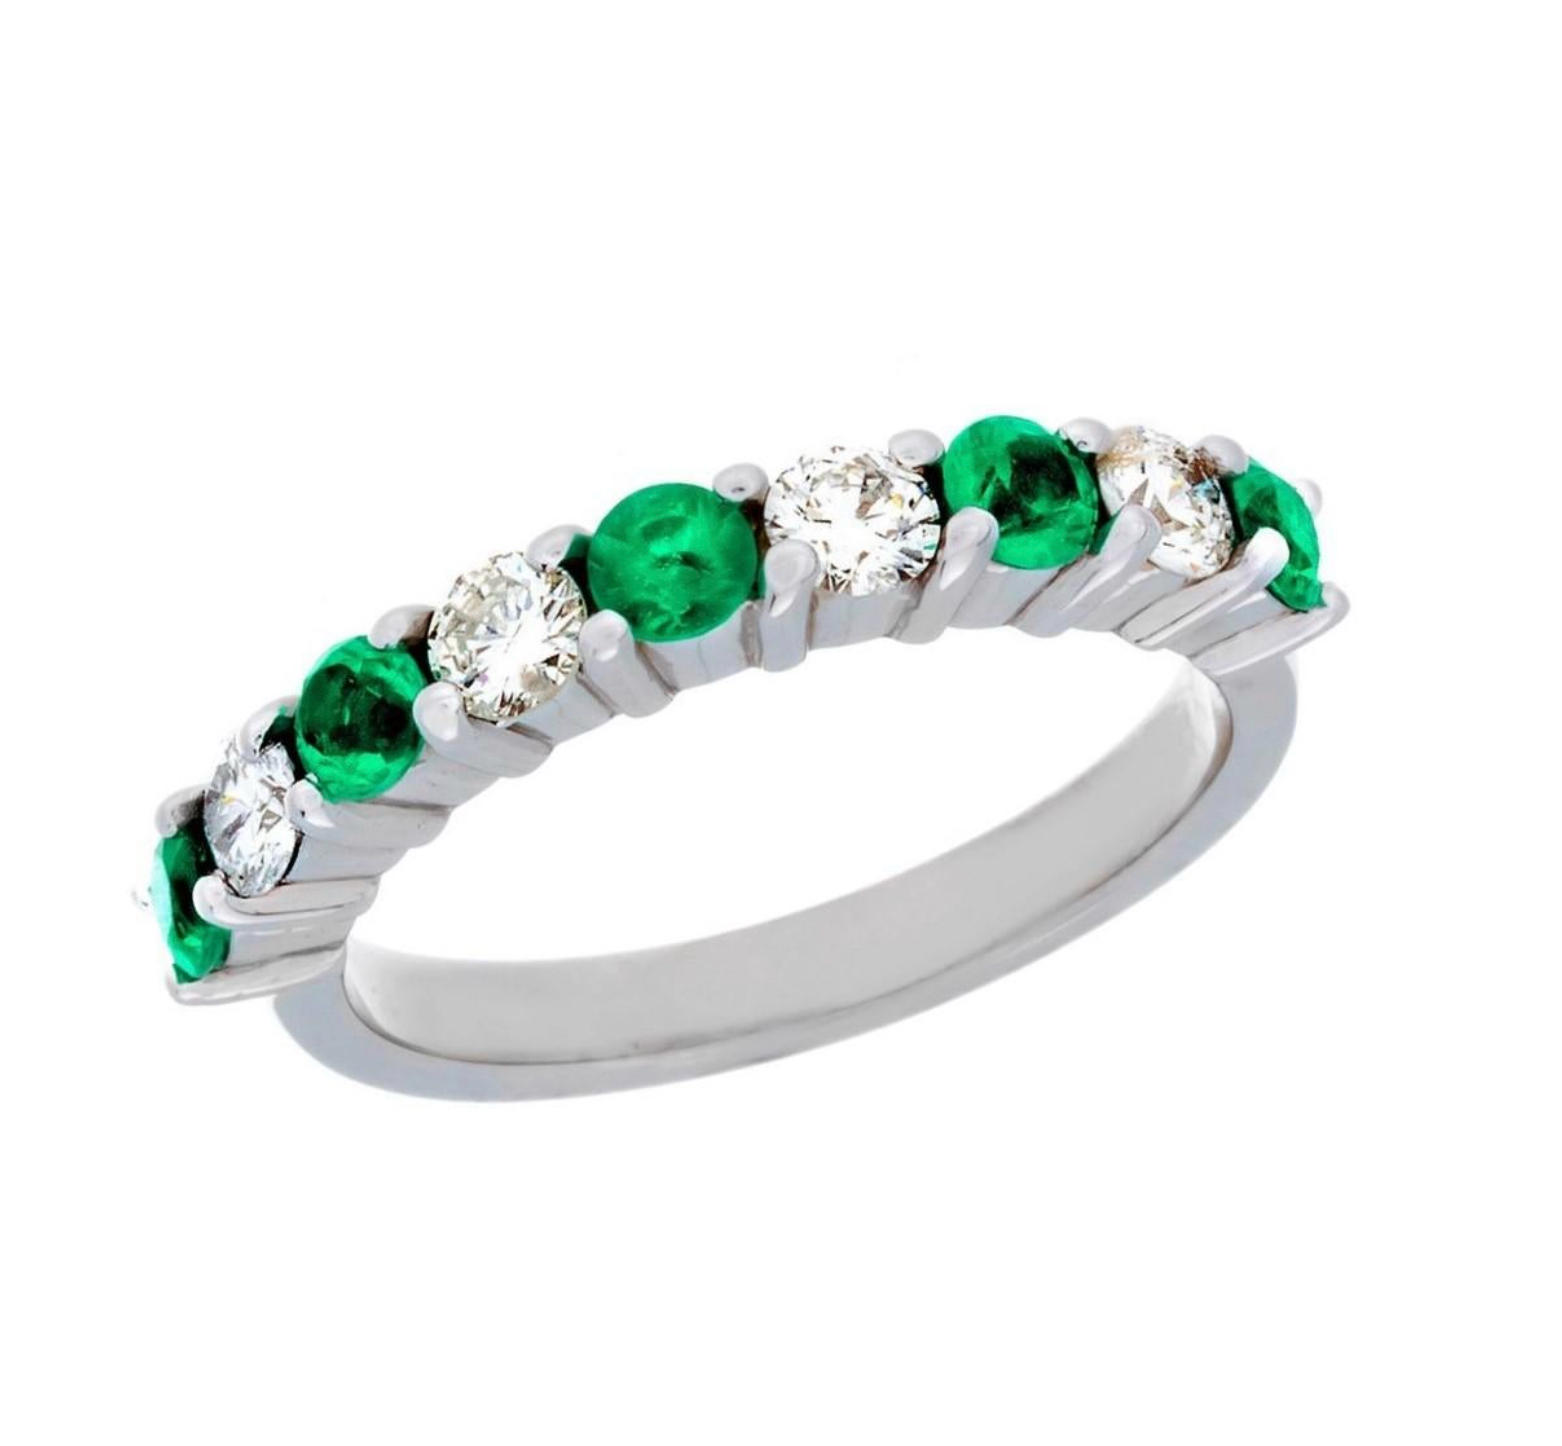 14 Karat White Gold Emerald and Diamond Part Way Band Ring